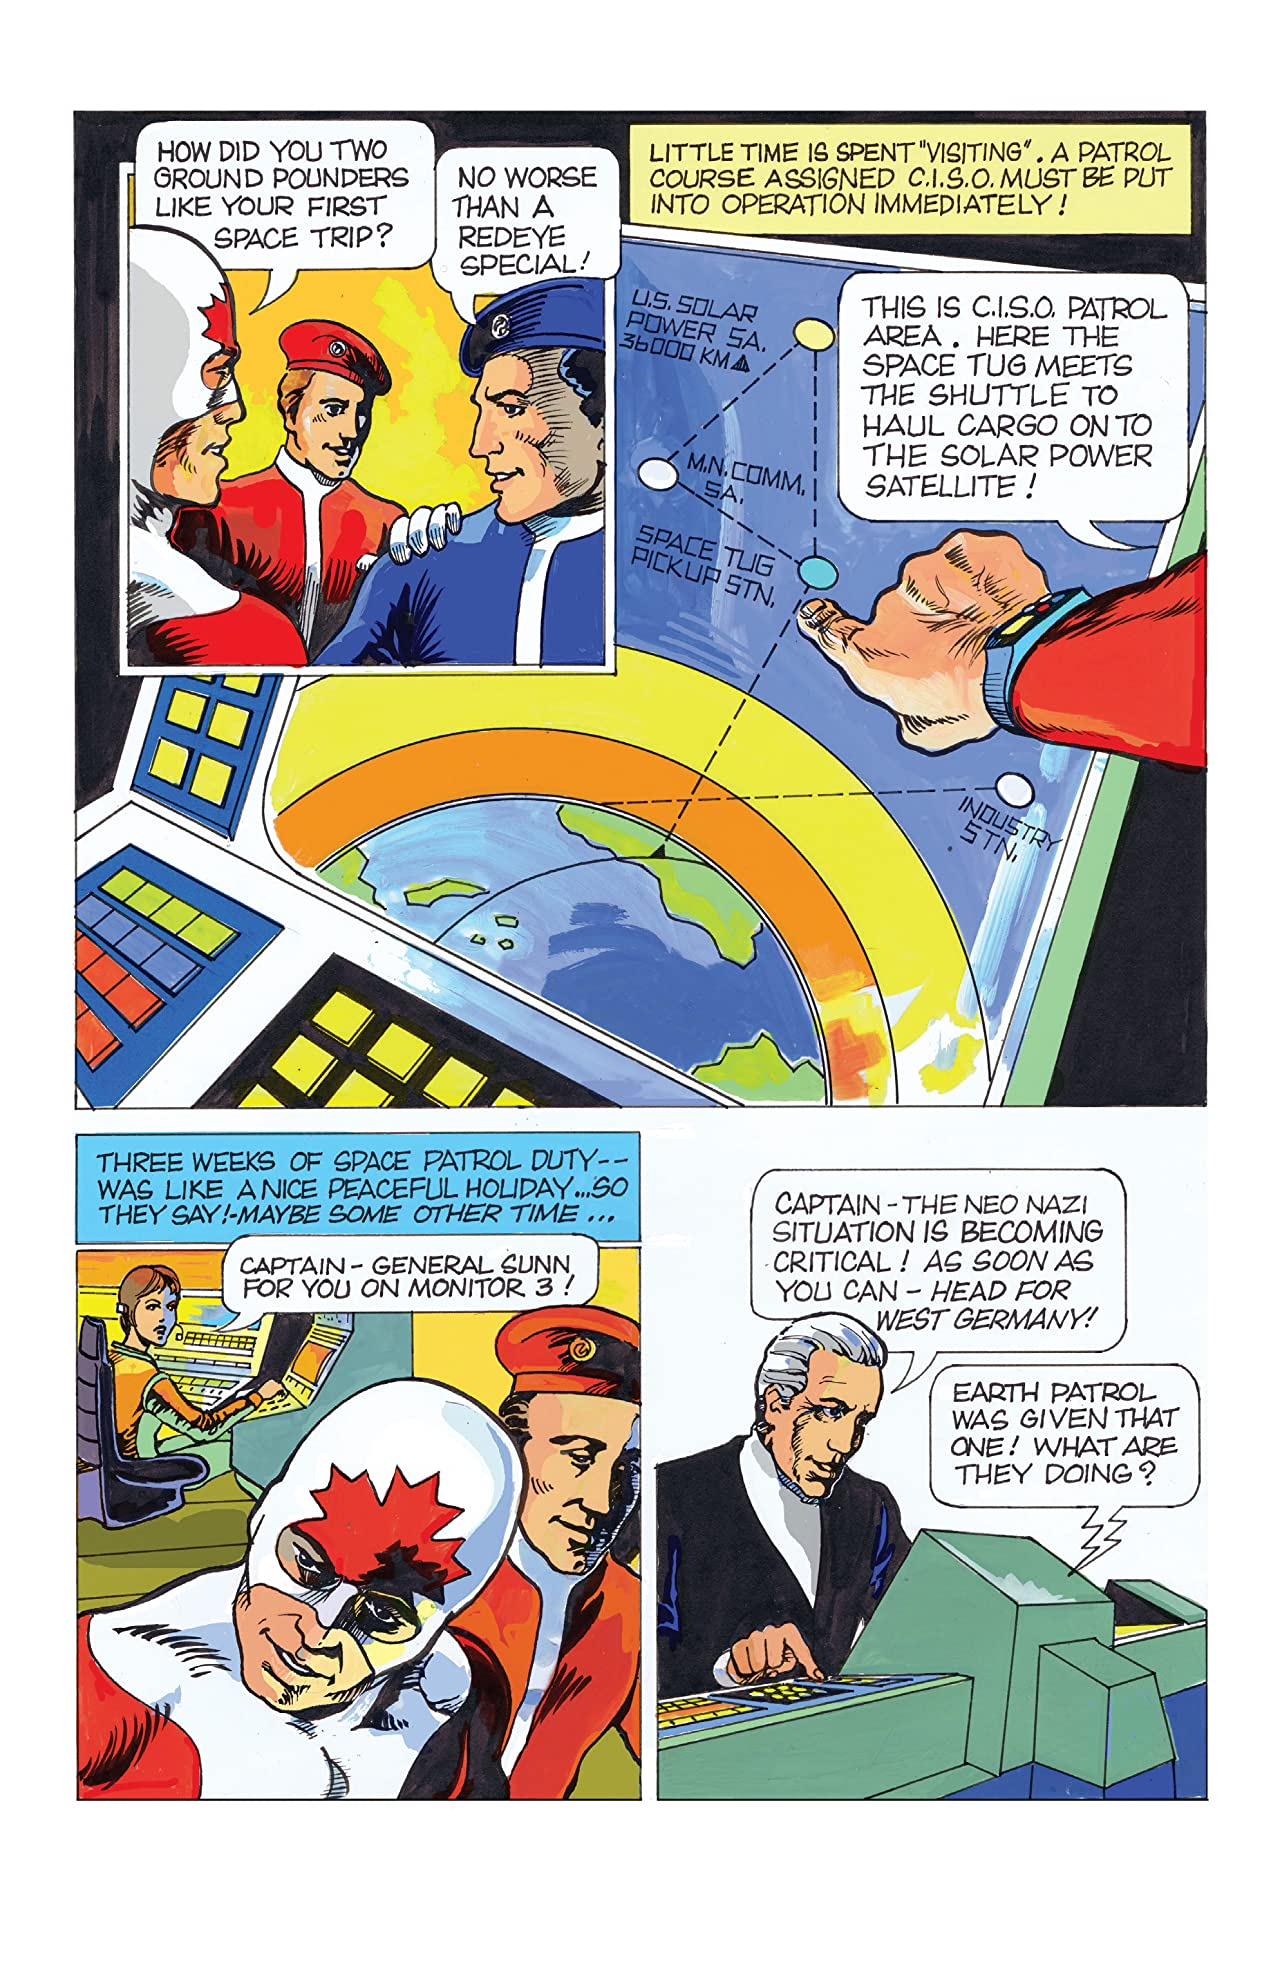 Captain Canuck - Original Series #5